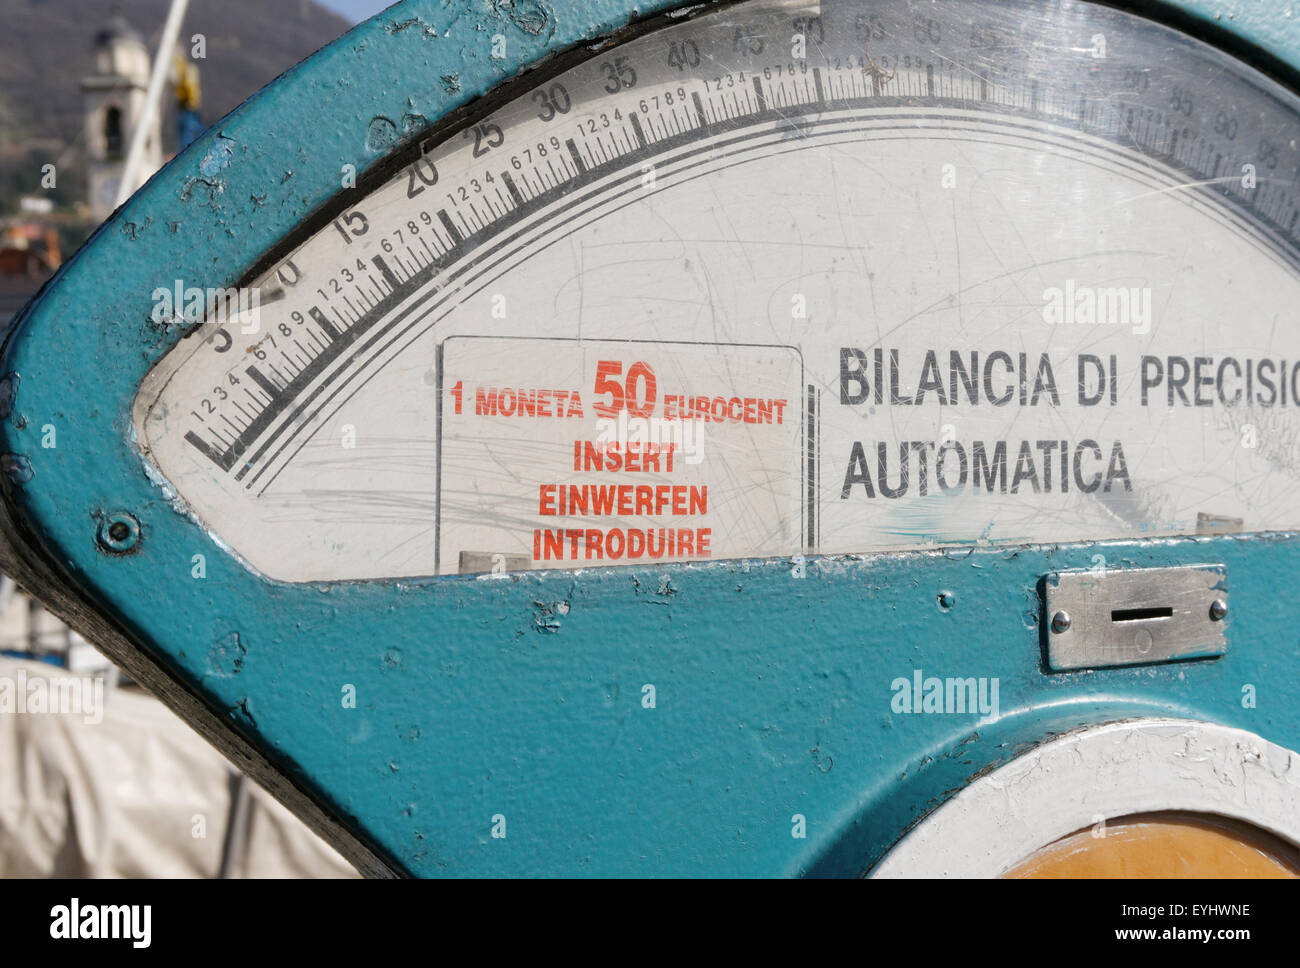 Old coin operated weigh scale in Italy - Stock Image